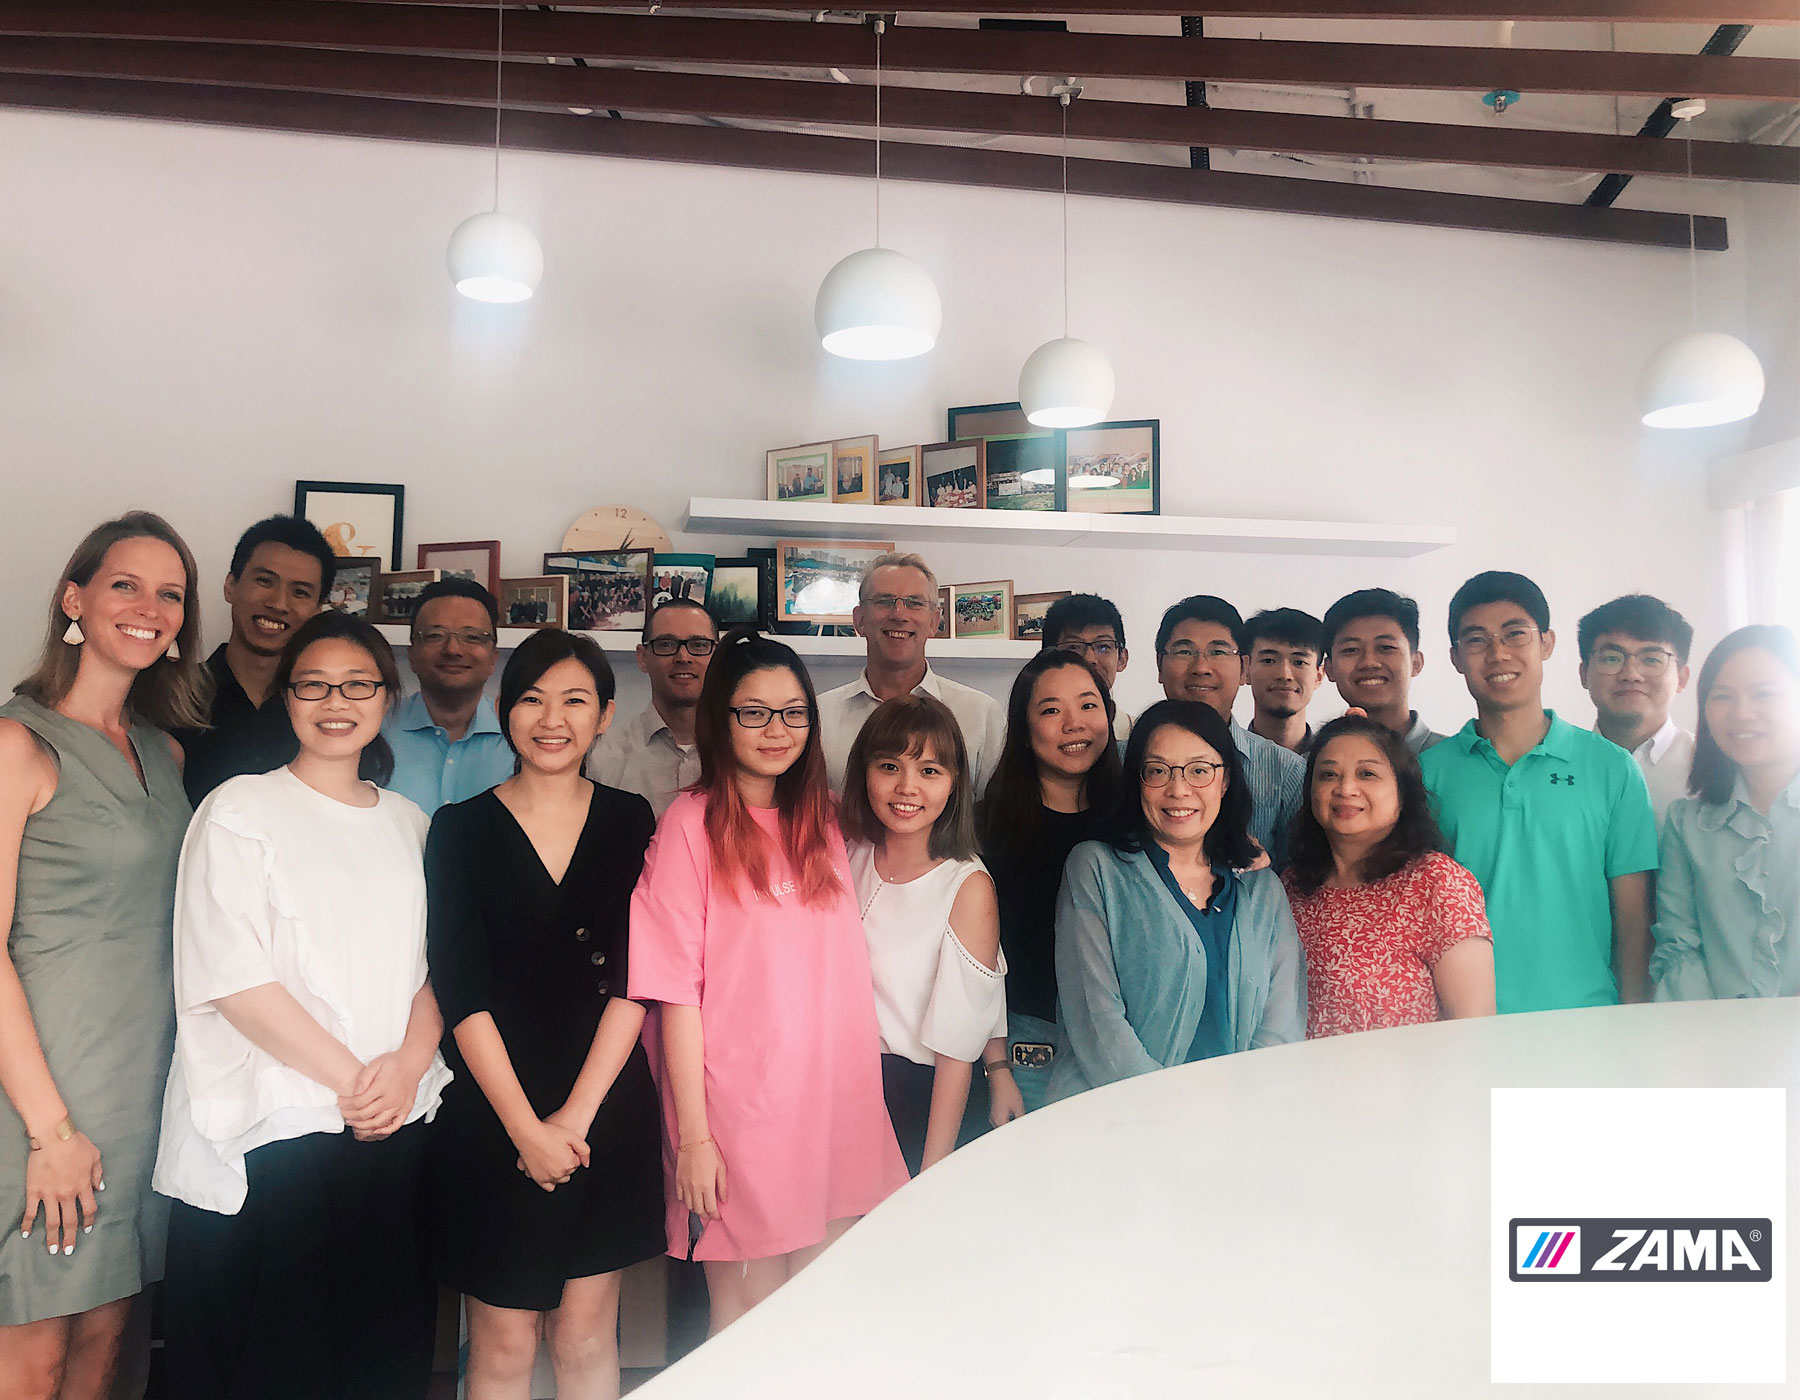 Talk about Zero Waste and sustainability at Zamacorp - Hong Kong - August 2019